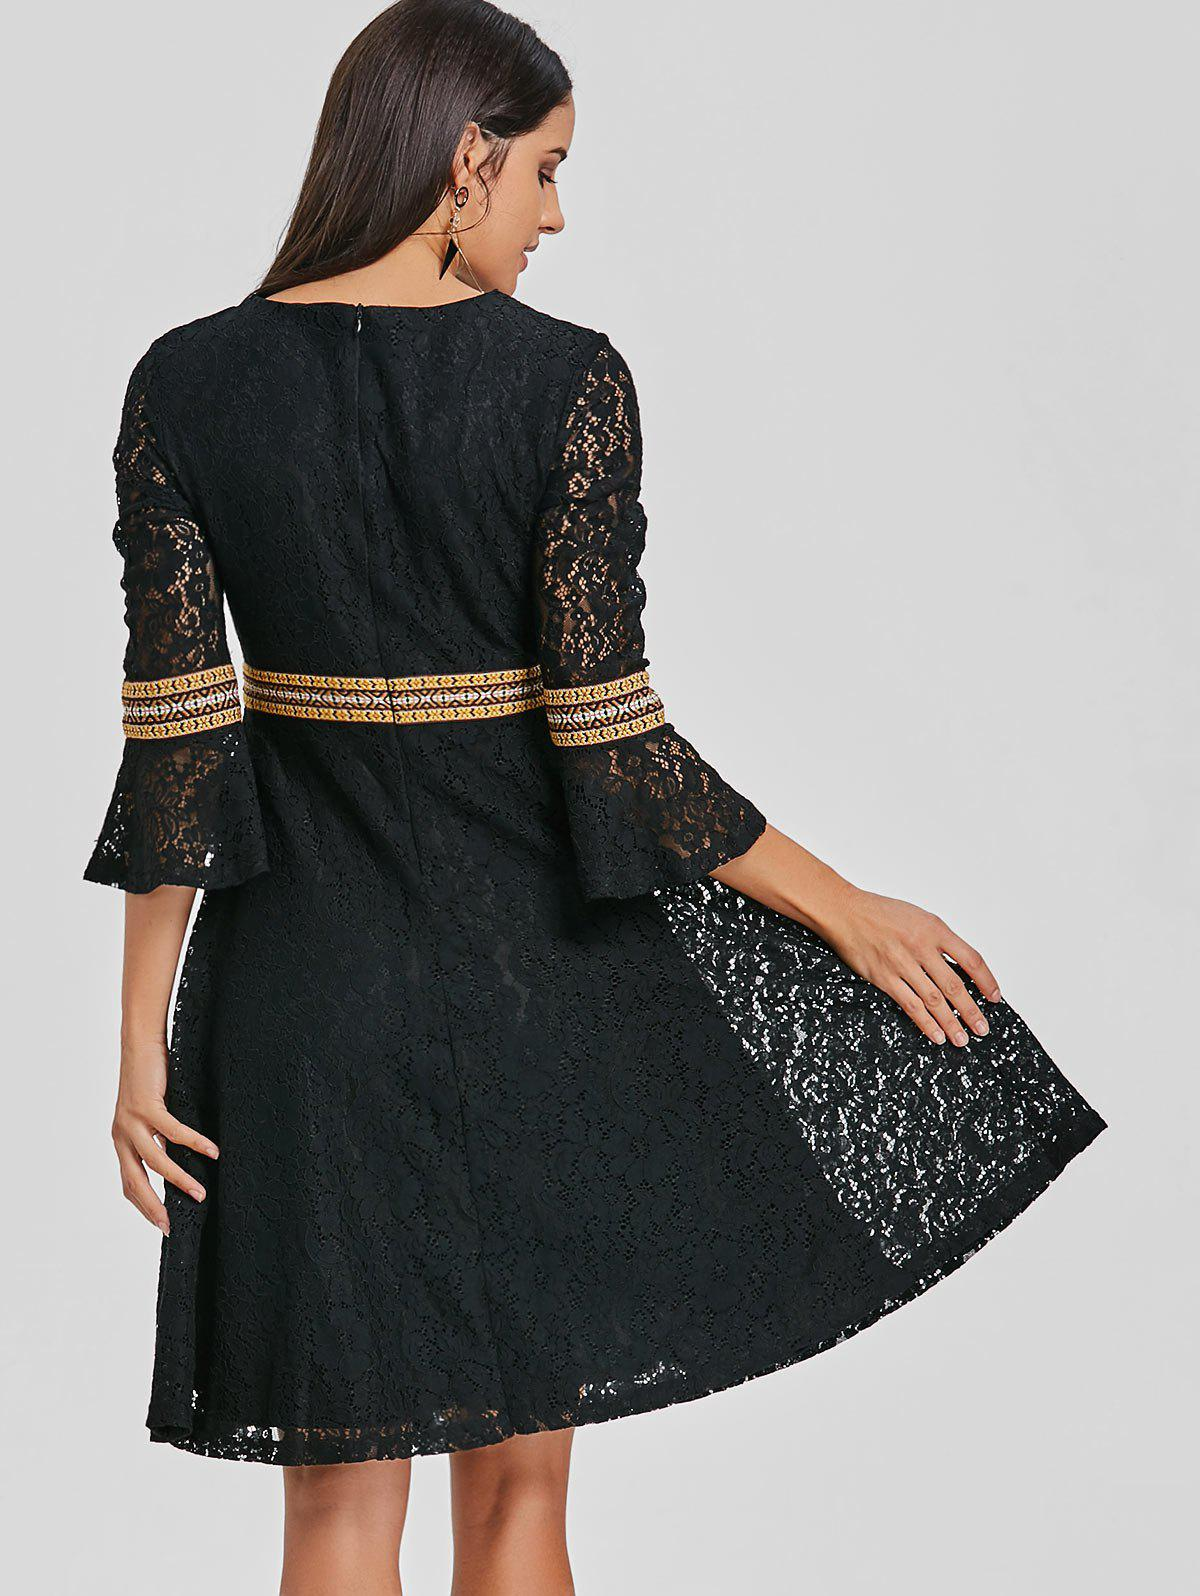 Embroidered Bell Sleeve Lace A Line Dress - BLACK 2XL